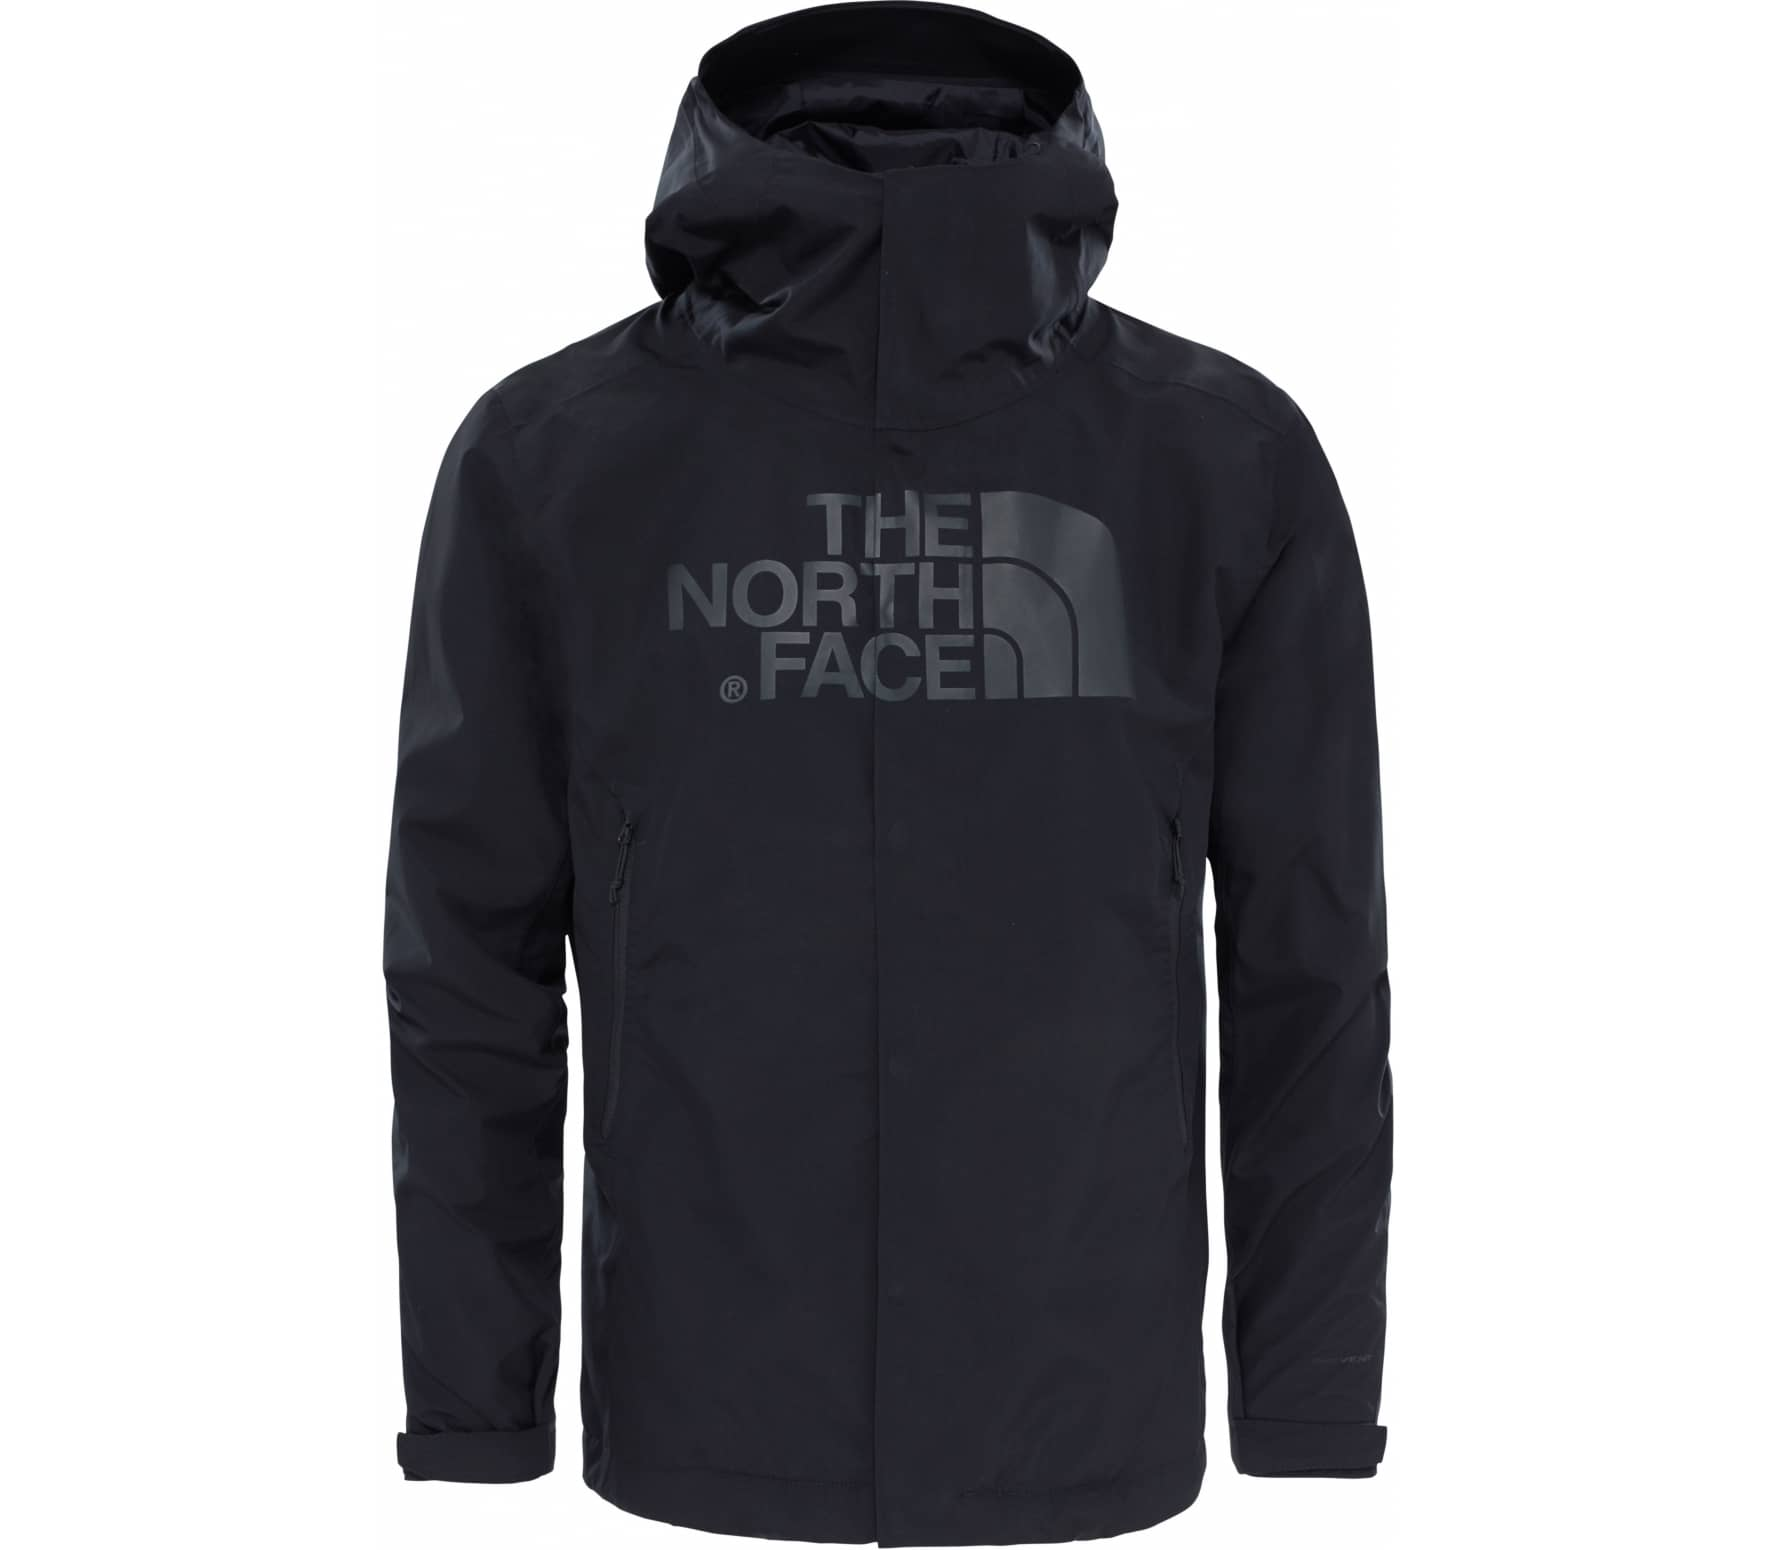 the north face drew peak herren regenjacke schwarz im online shop von keller sports kaufen. Black Bedroom Furniture Sets. Home Design Ideas